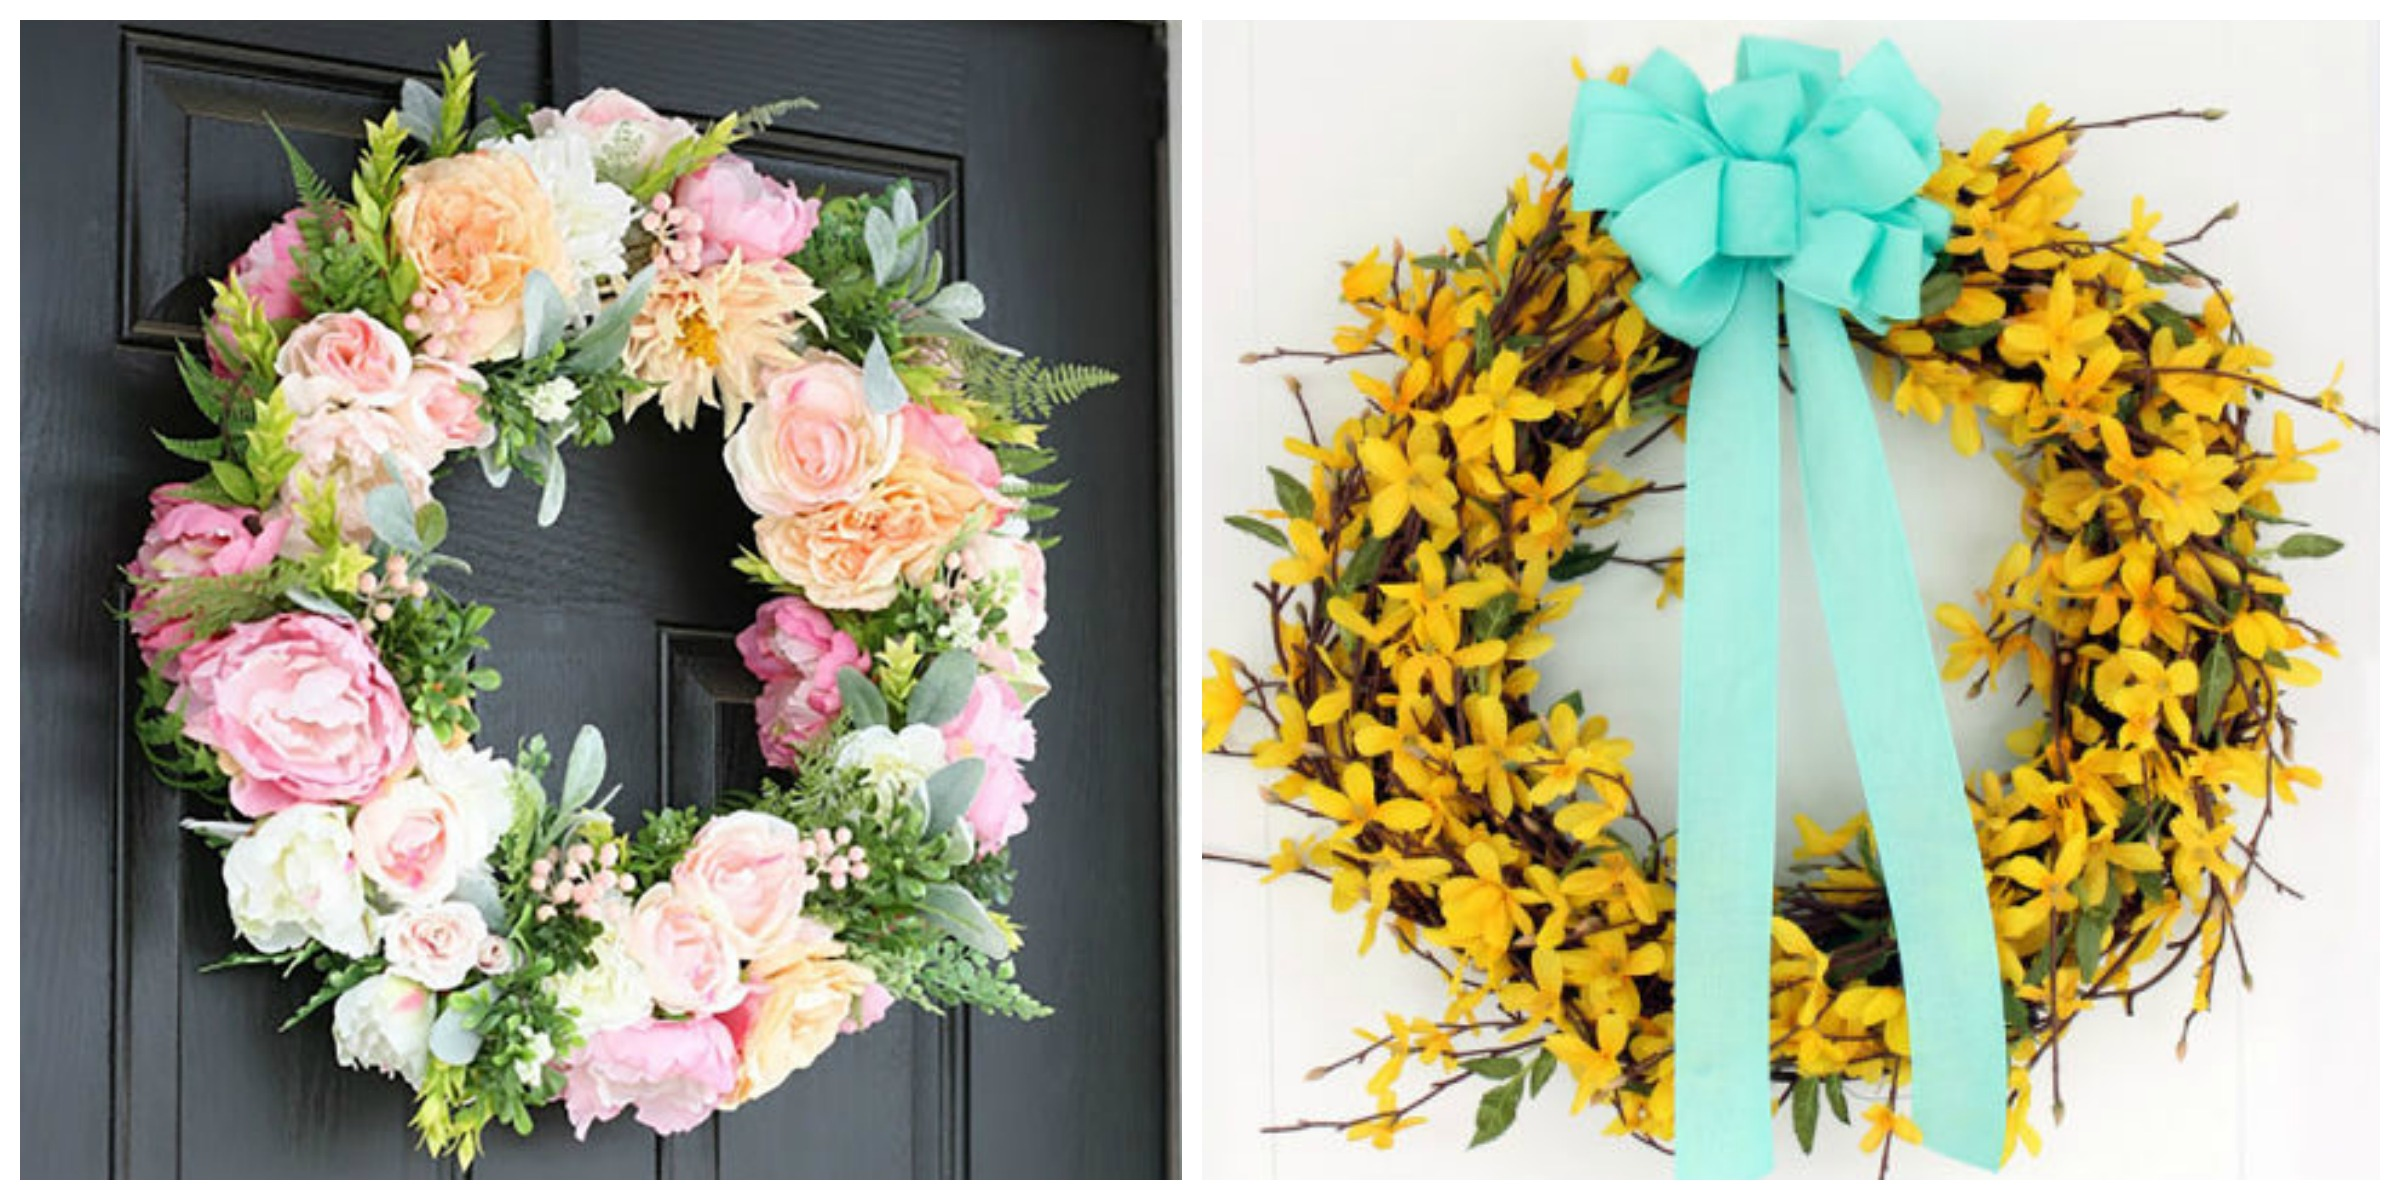 23 diy spring wreaths how to make a spring wreath yourself for How to make door wreaths for spring